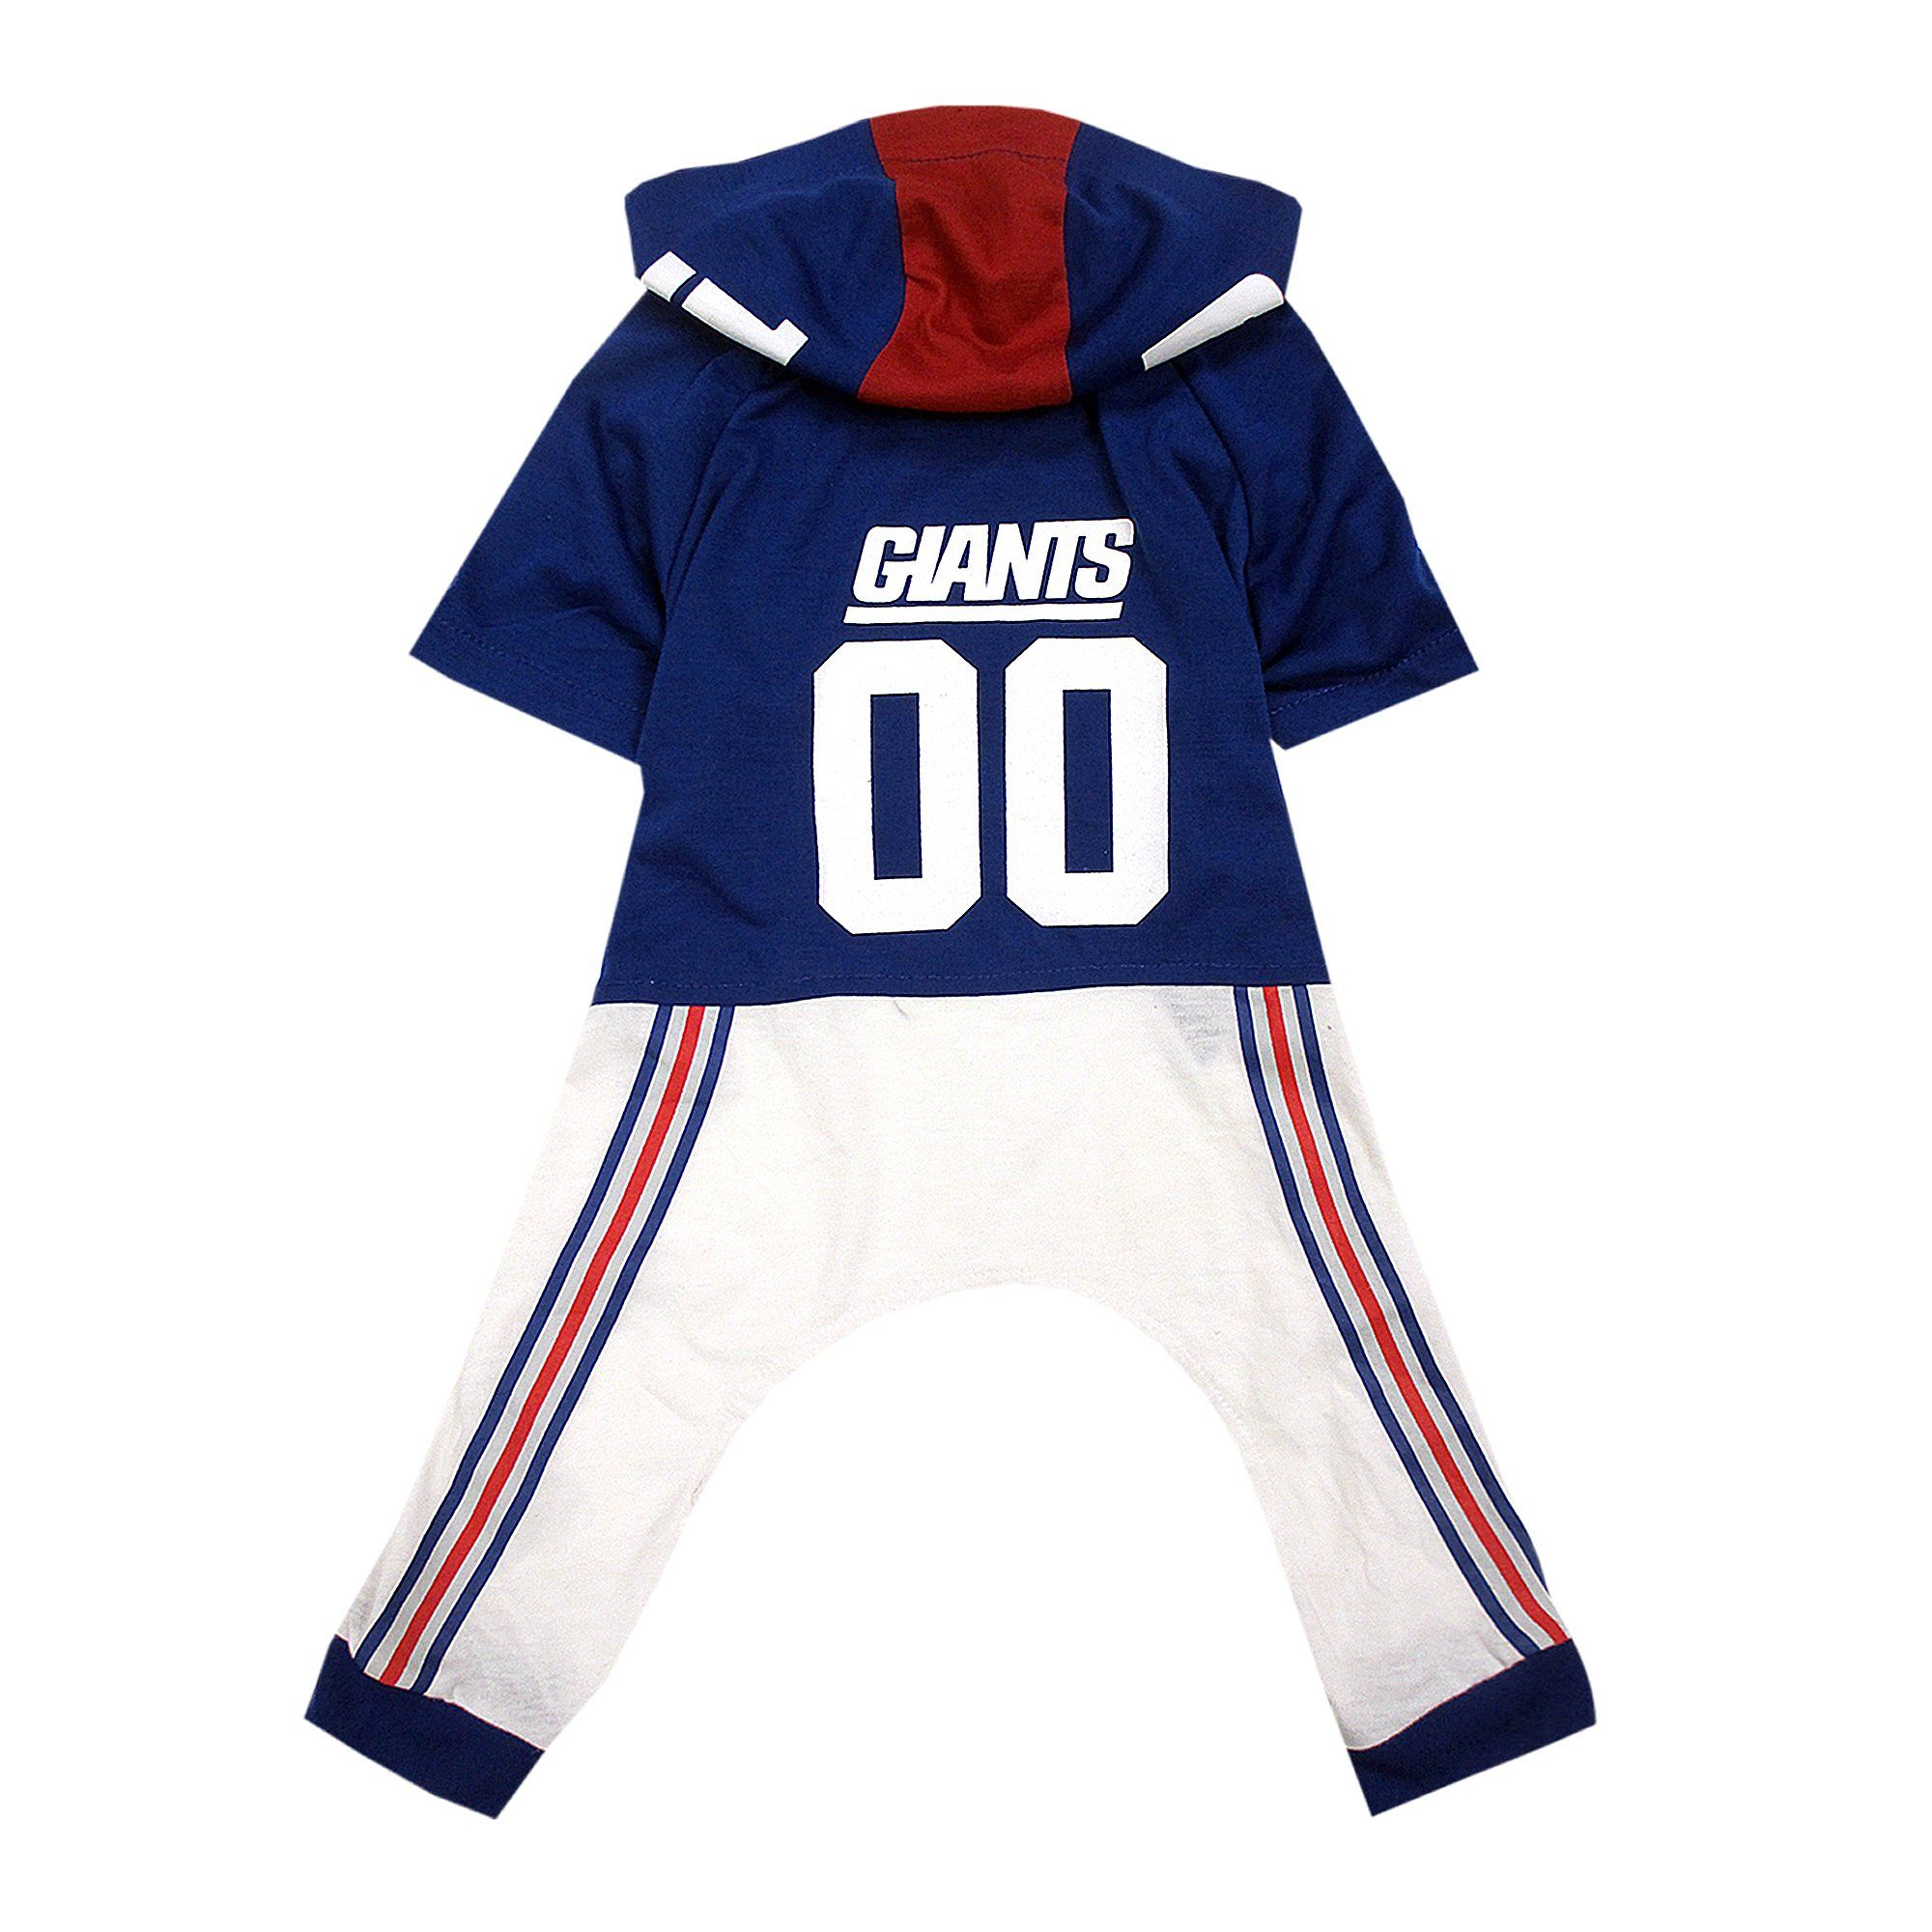 Pets First New York Giants Team Uniform Onesi for Dogs b1b2f9d61